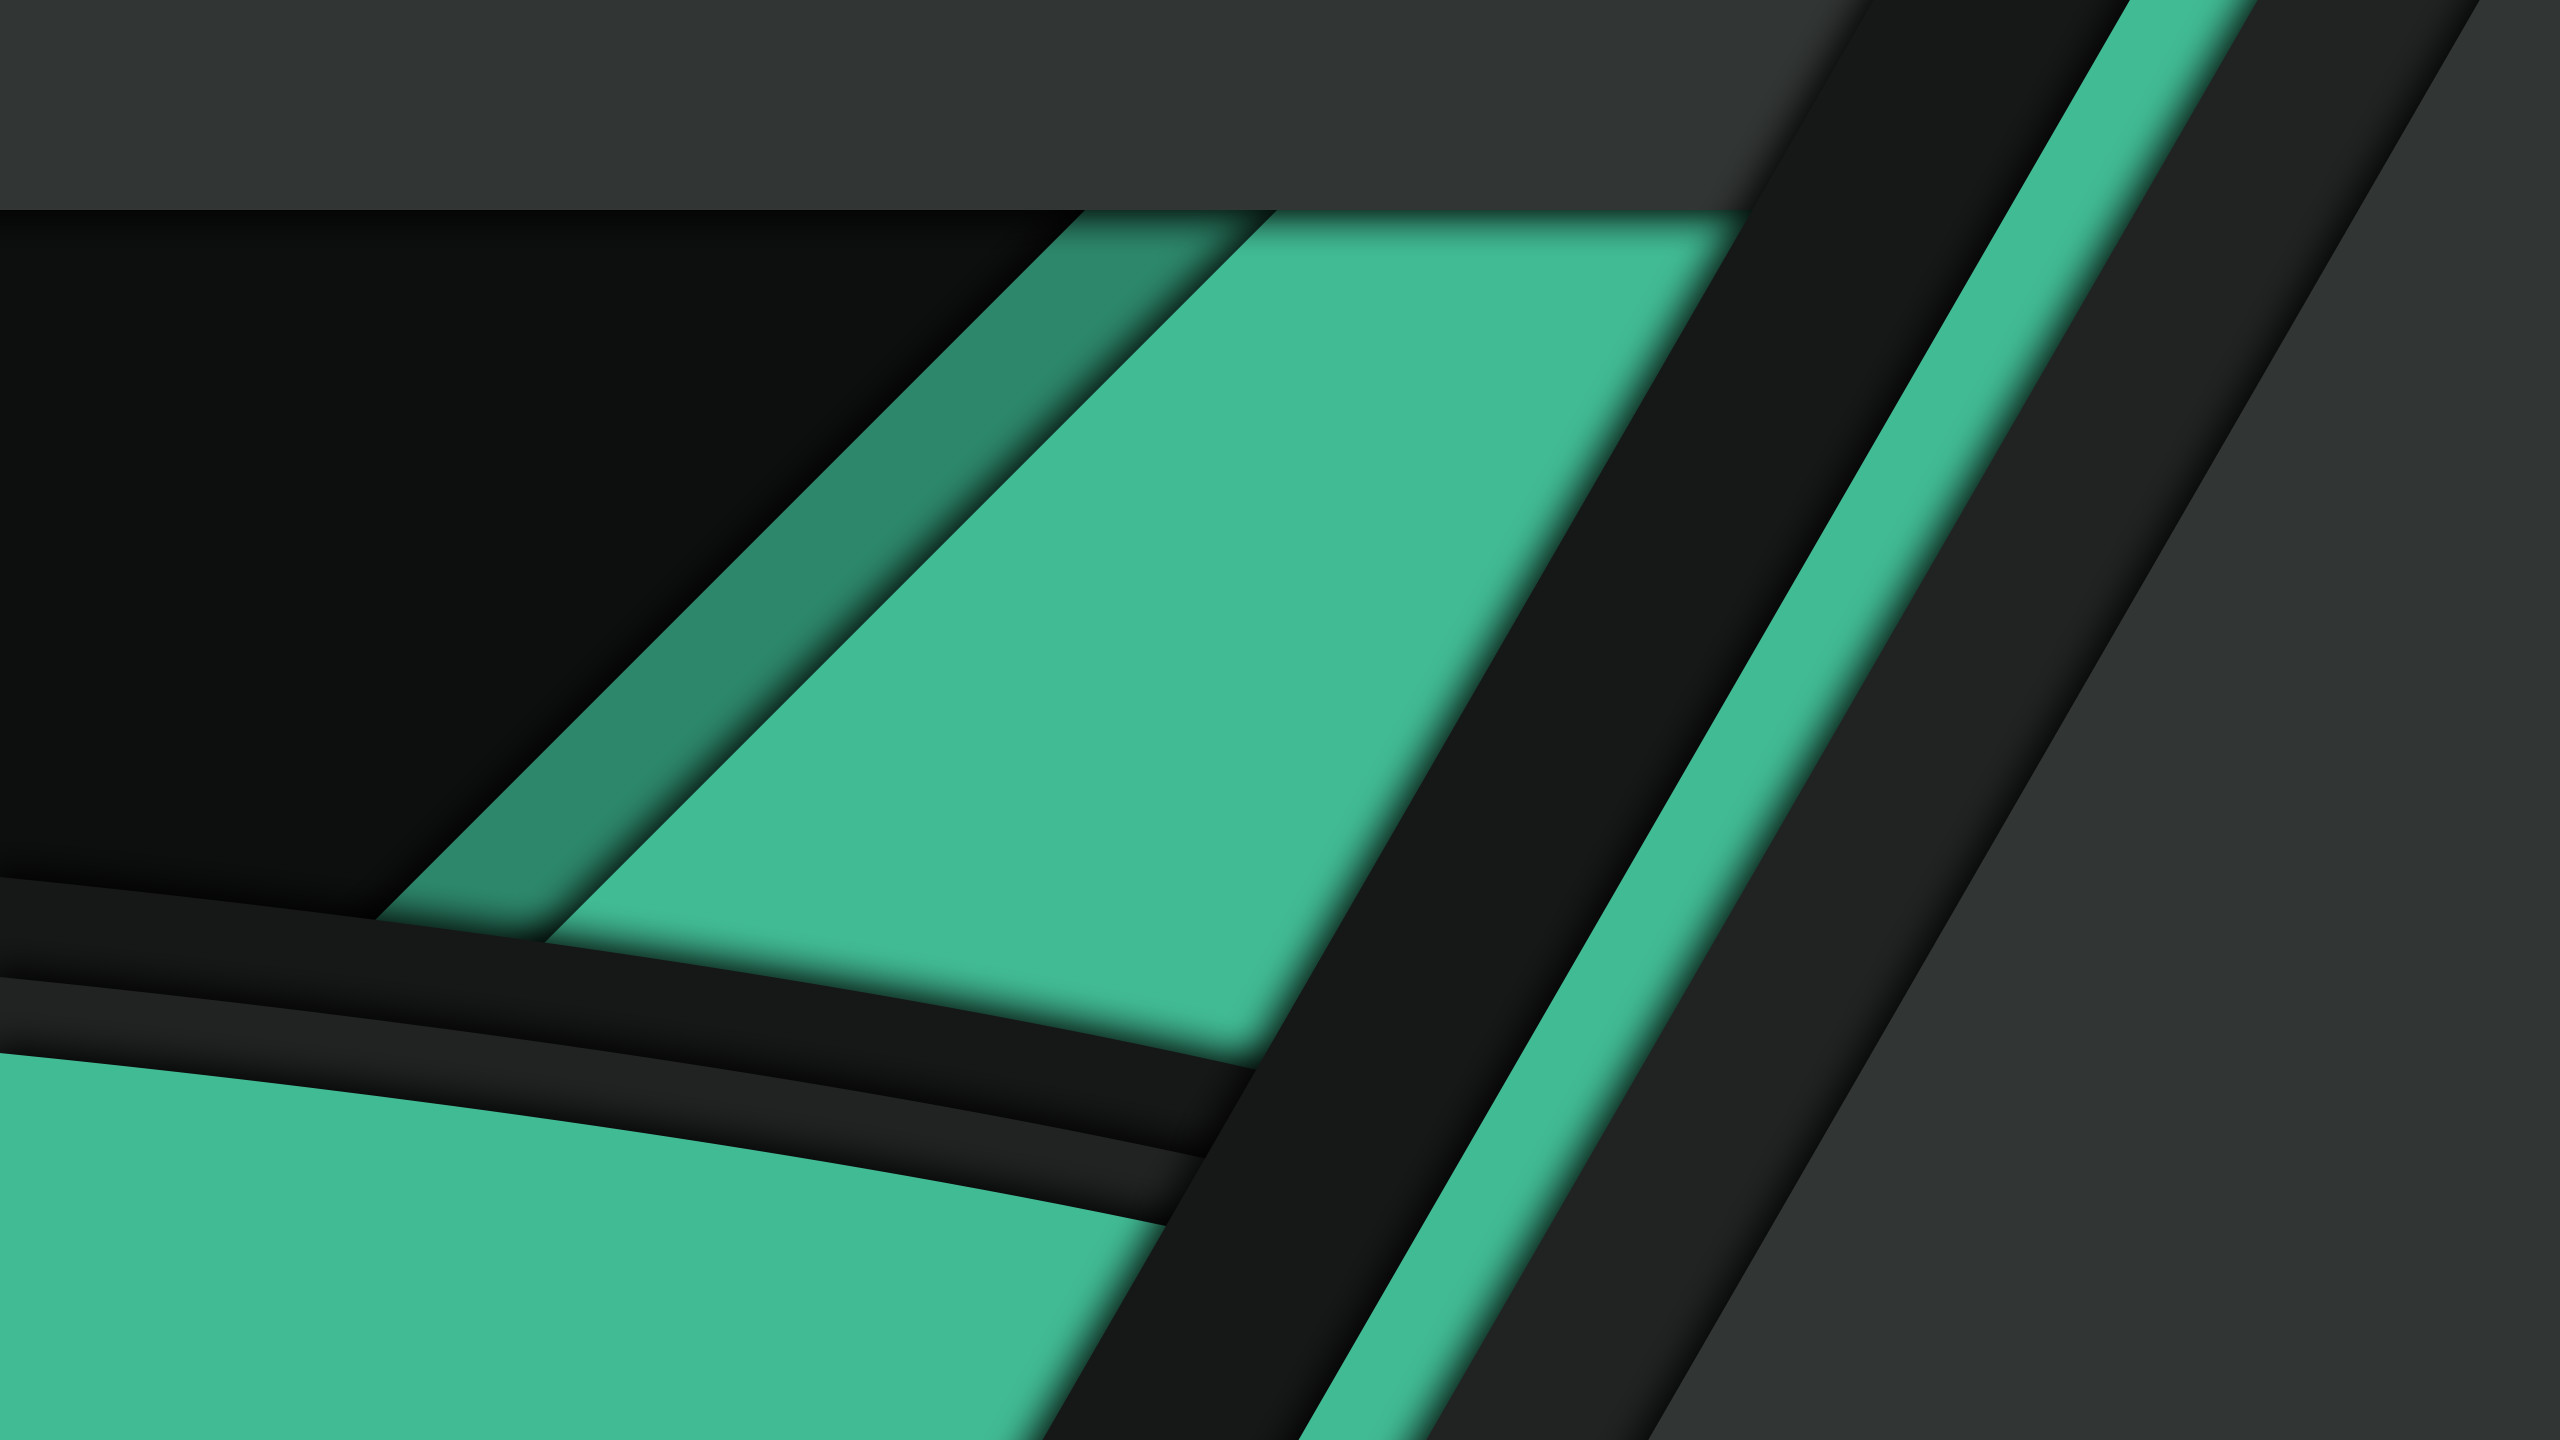 Black Green Material Design